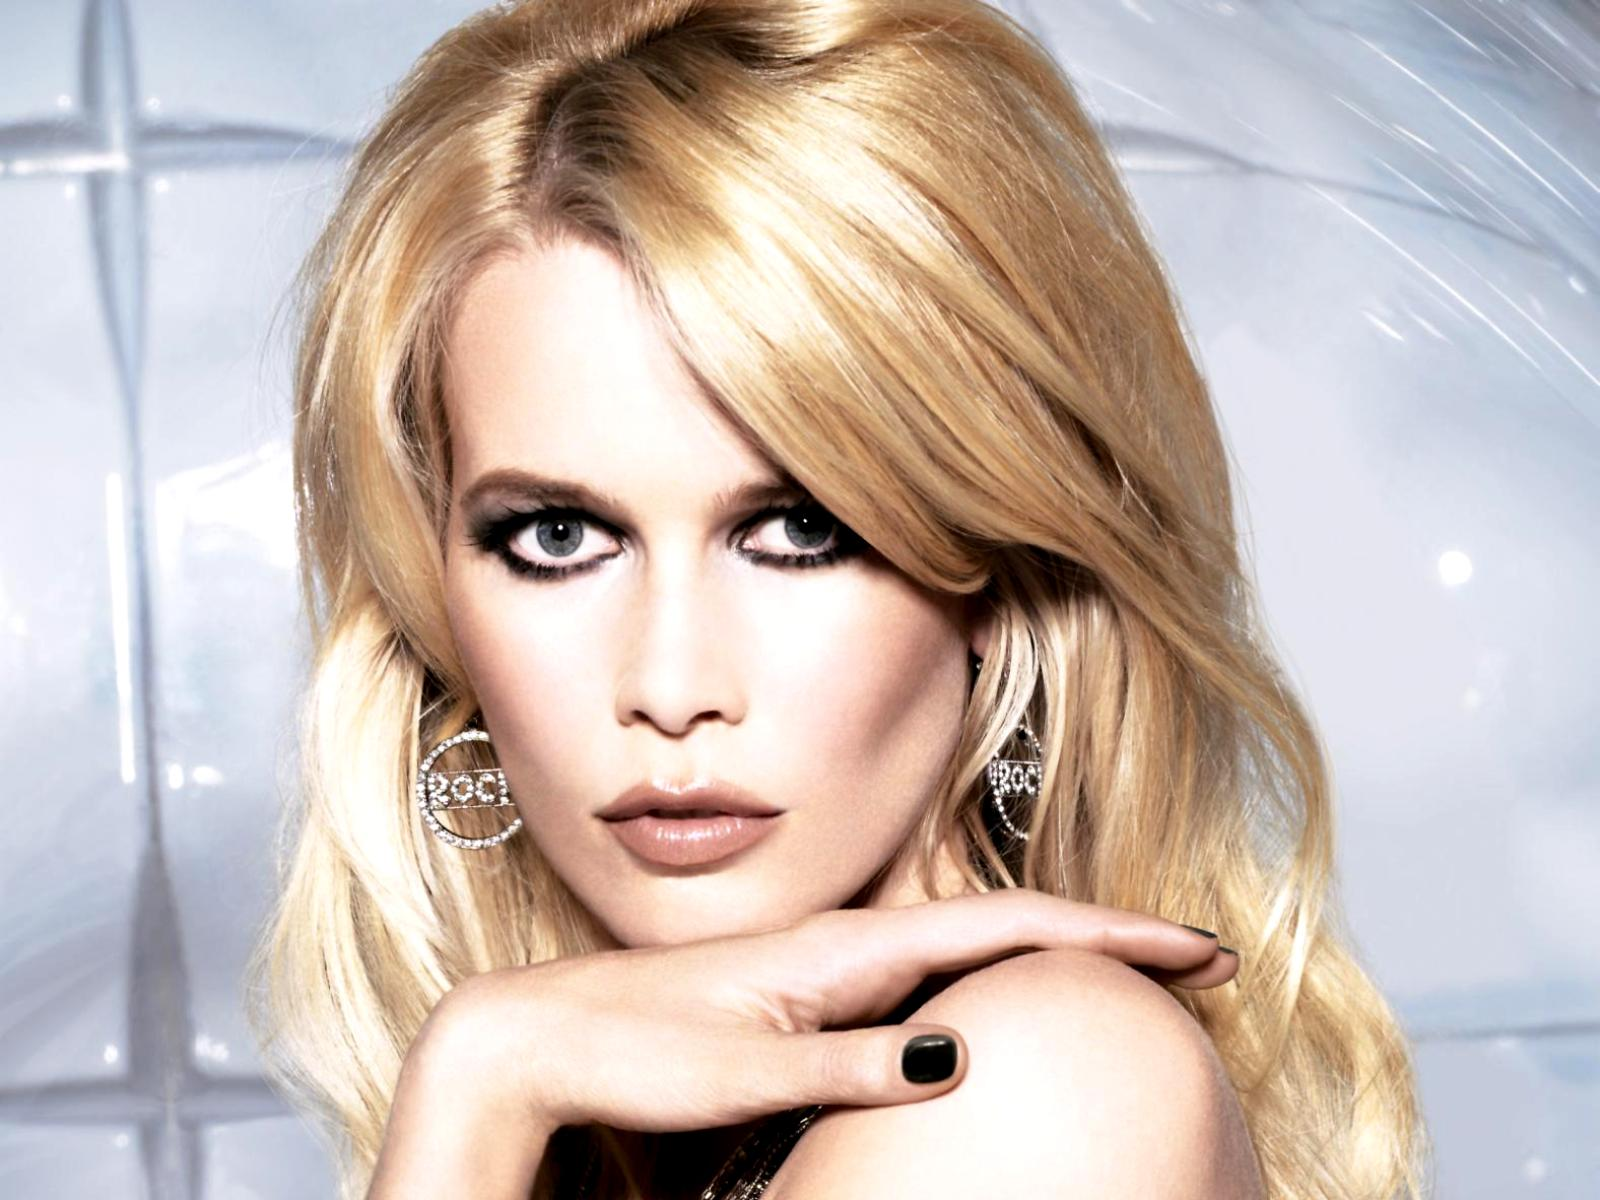 Claudia Schiffer Is The New Face Of Opel To Star In